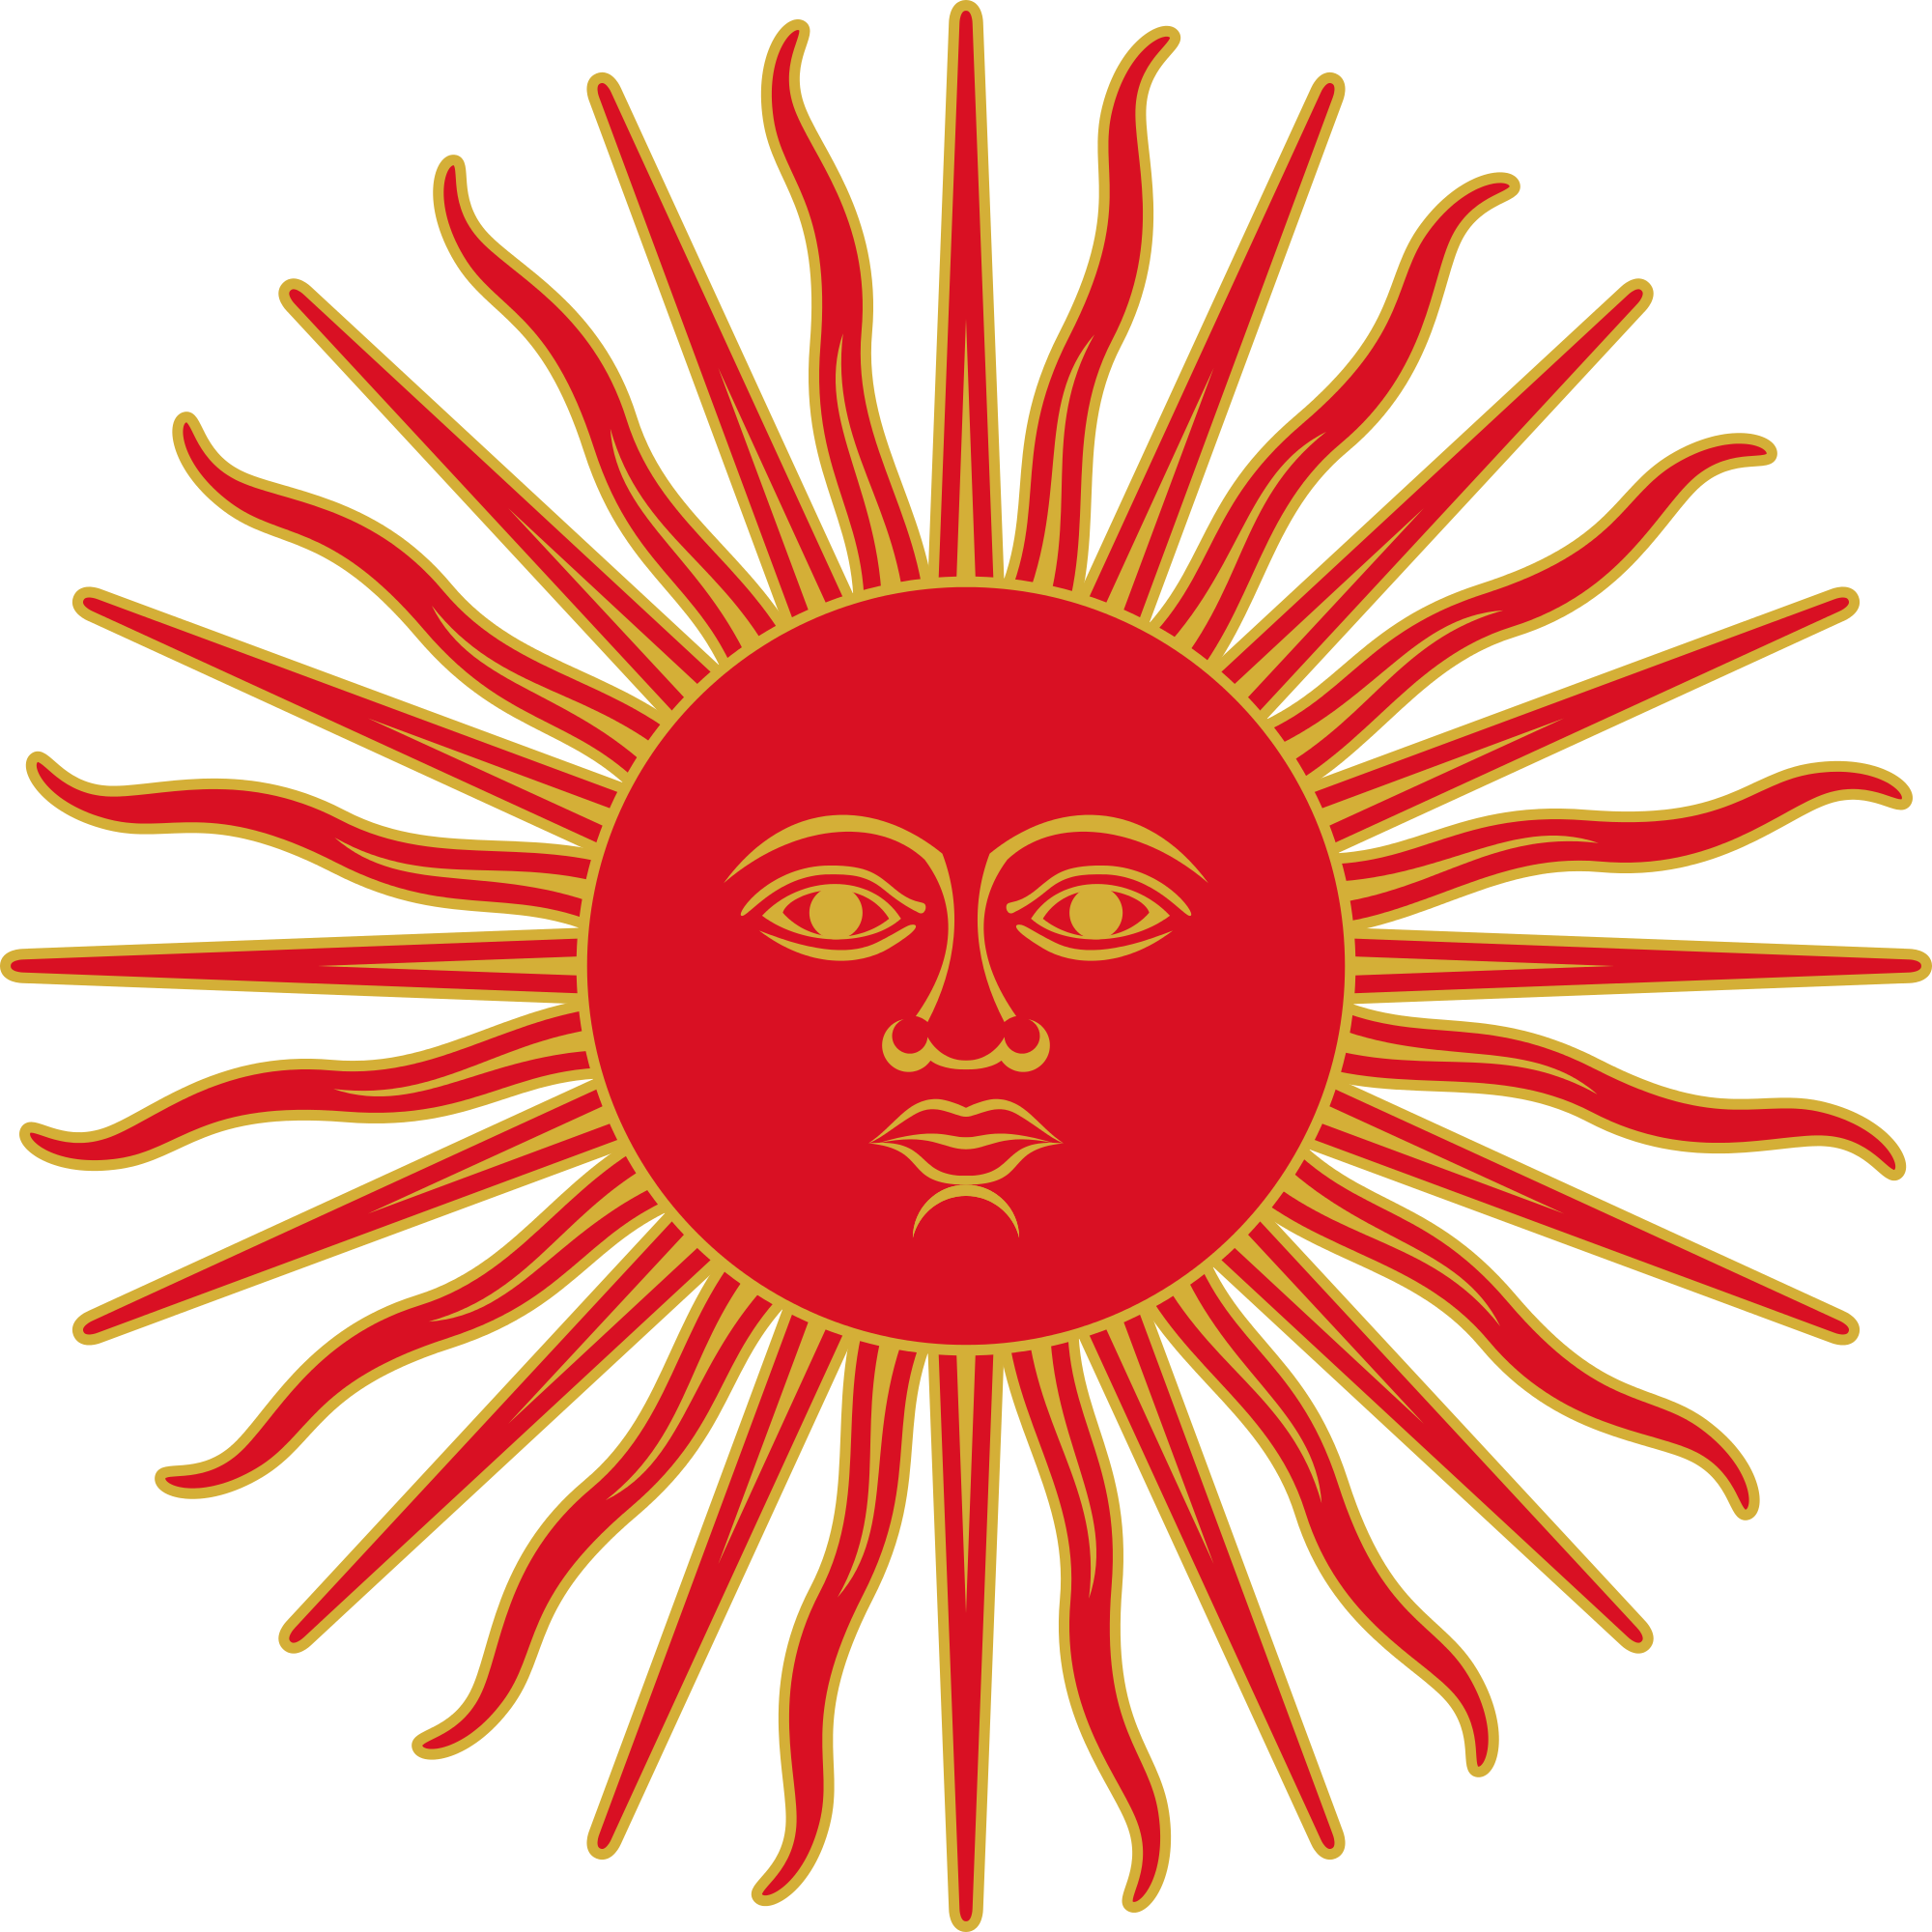 Sun of may clipart clipart freeuse File:Sun of May (Peru, 1822-1825).svg - Wikimedia Commons clipart freeuse